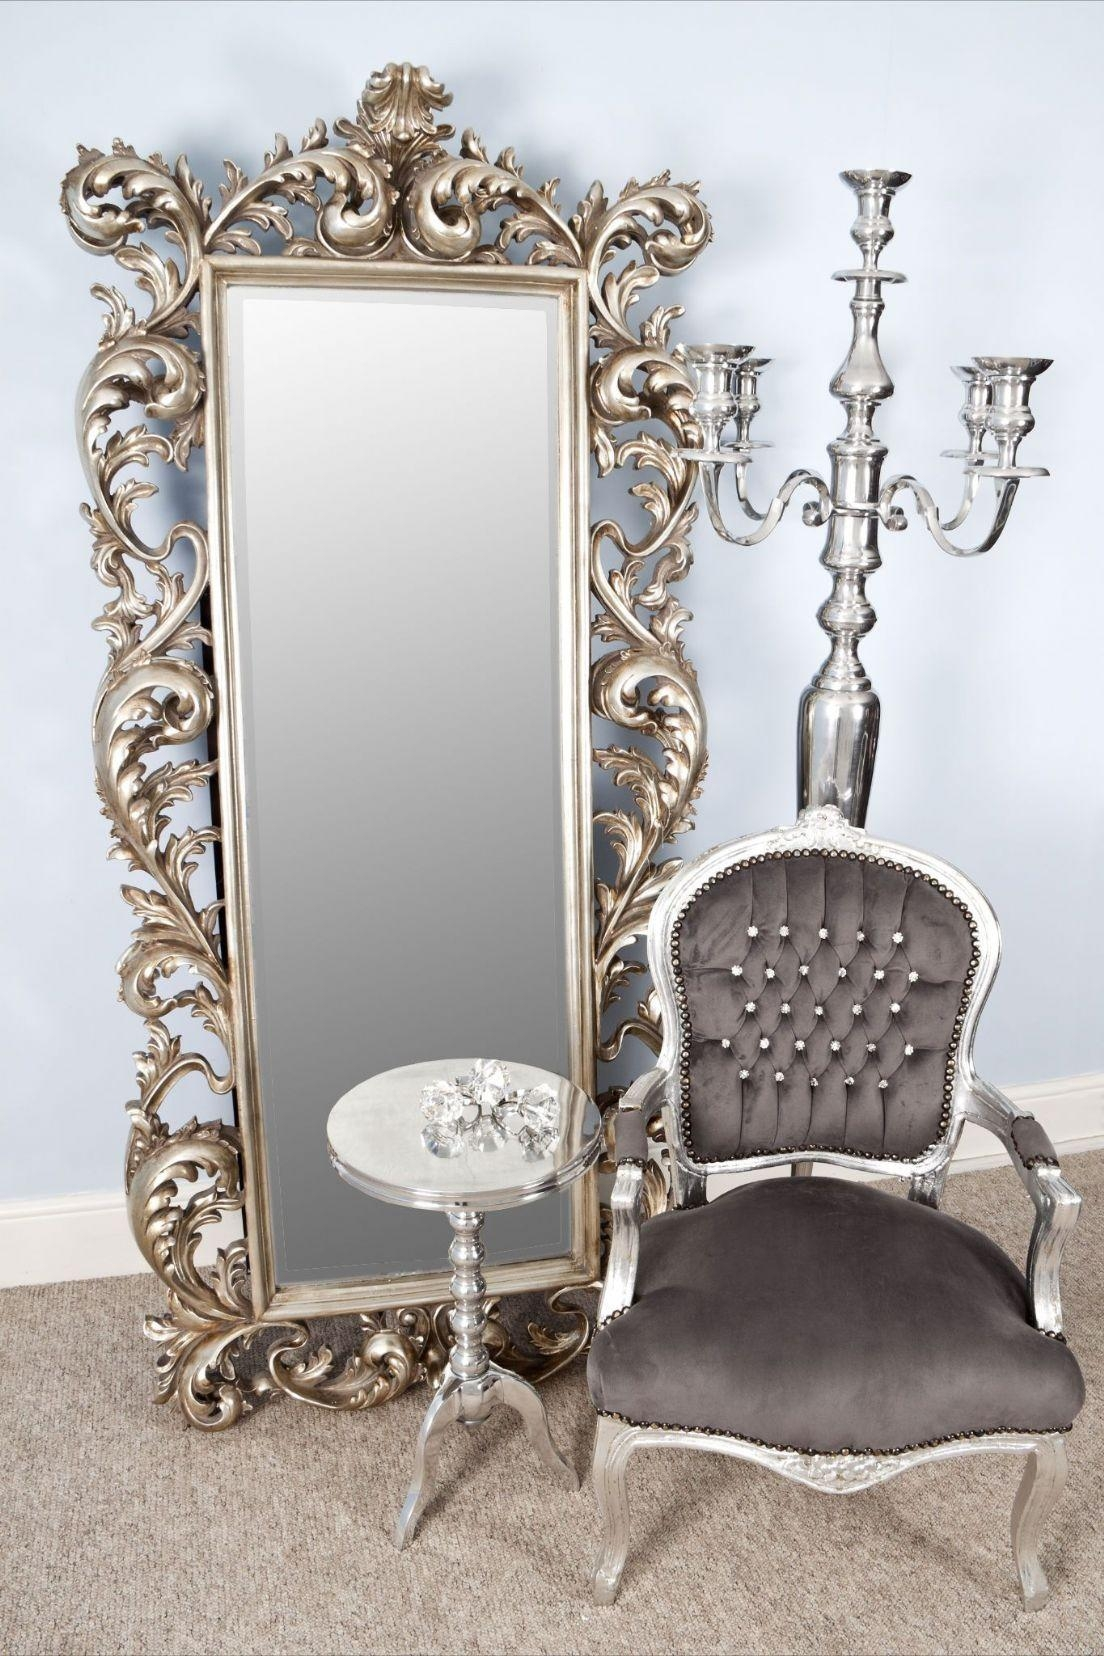 Full Length Mirrors For Sale 140 Beautiful Decoration Also Mirror Pertaining To Beautiful Mirrors For Sale (Image 6 of 20)